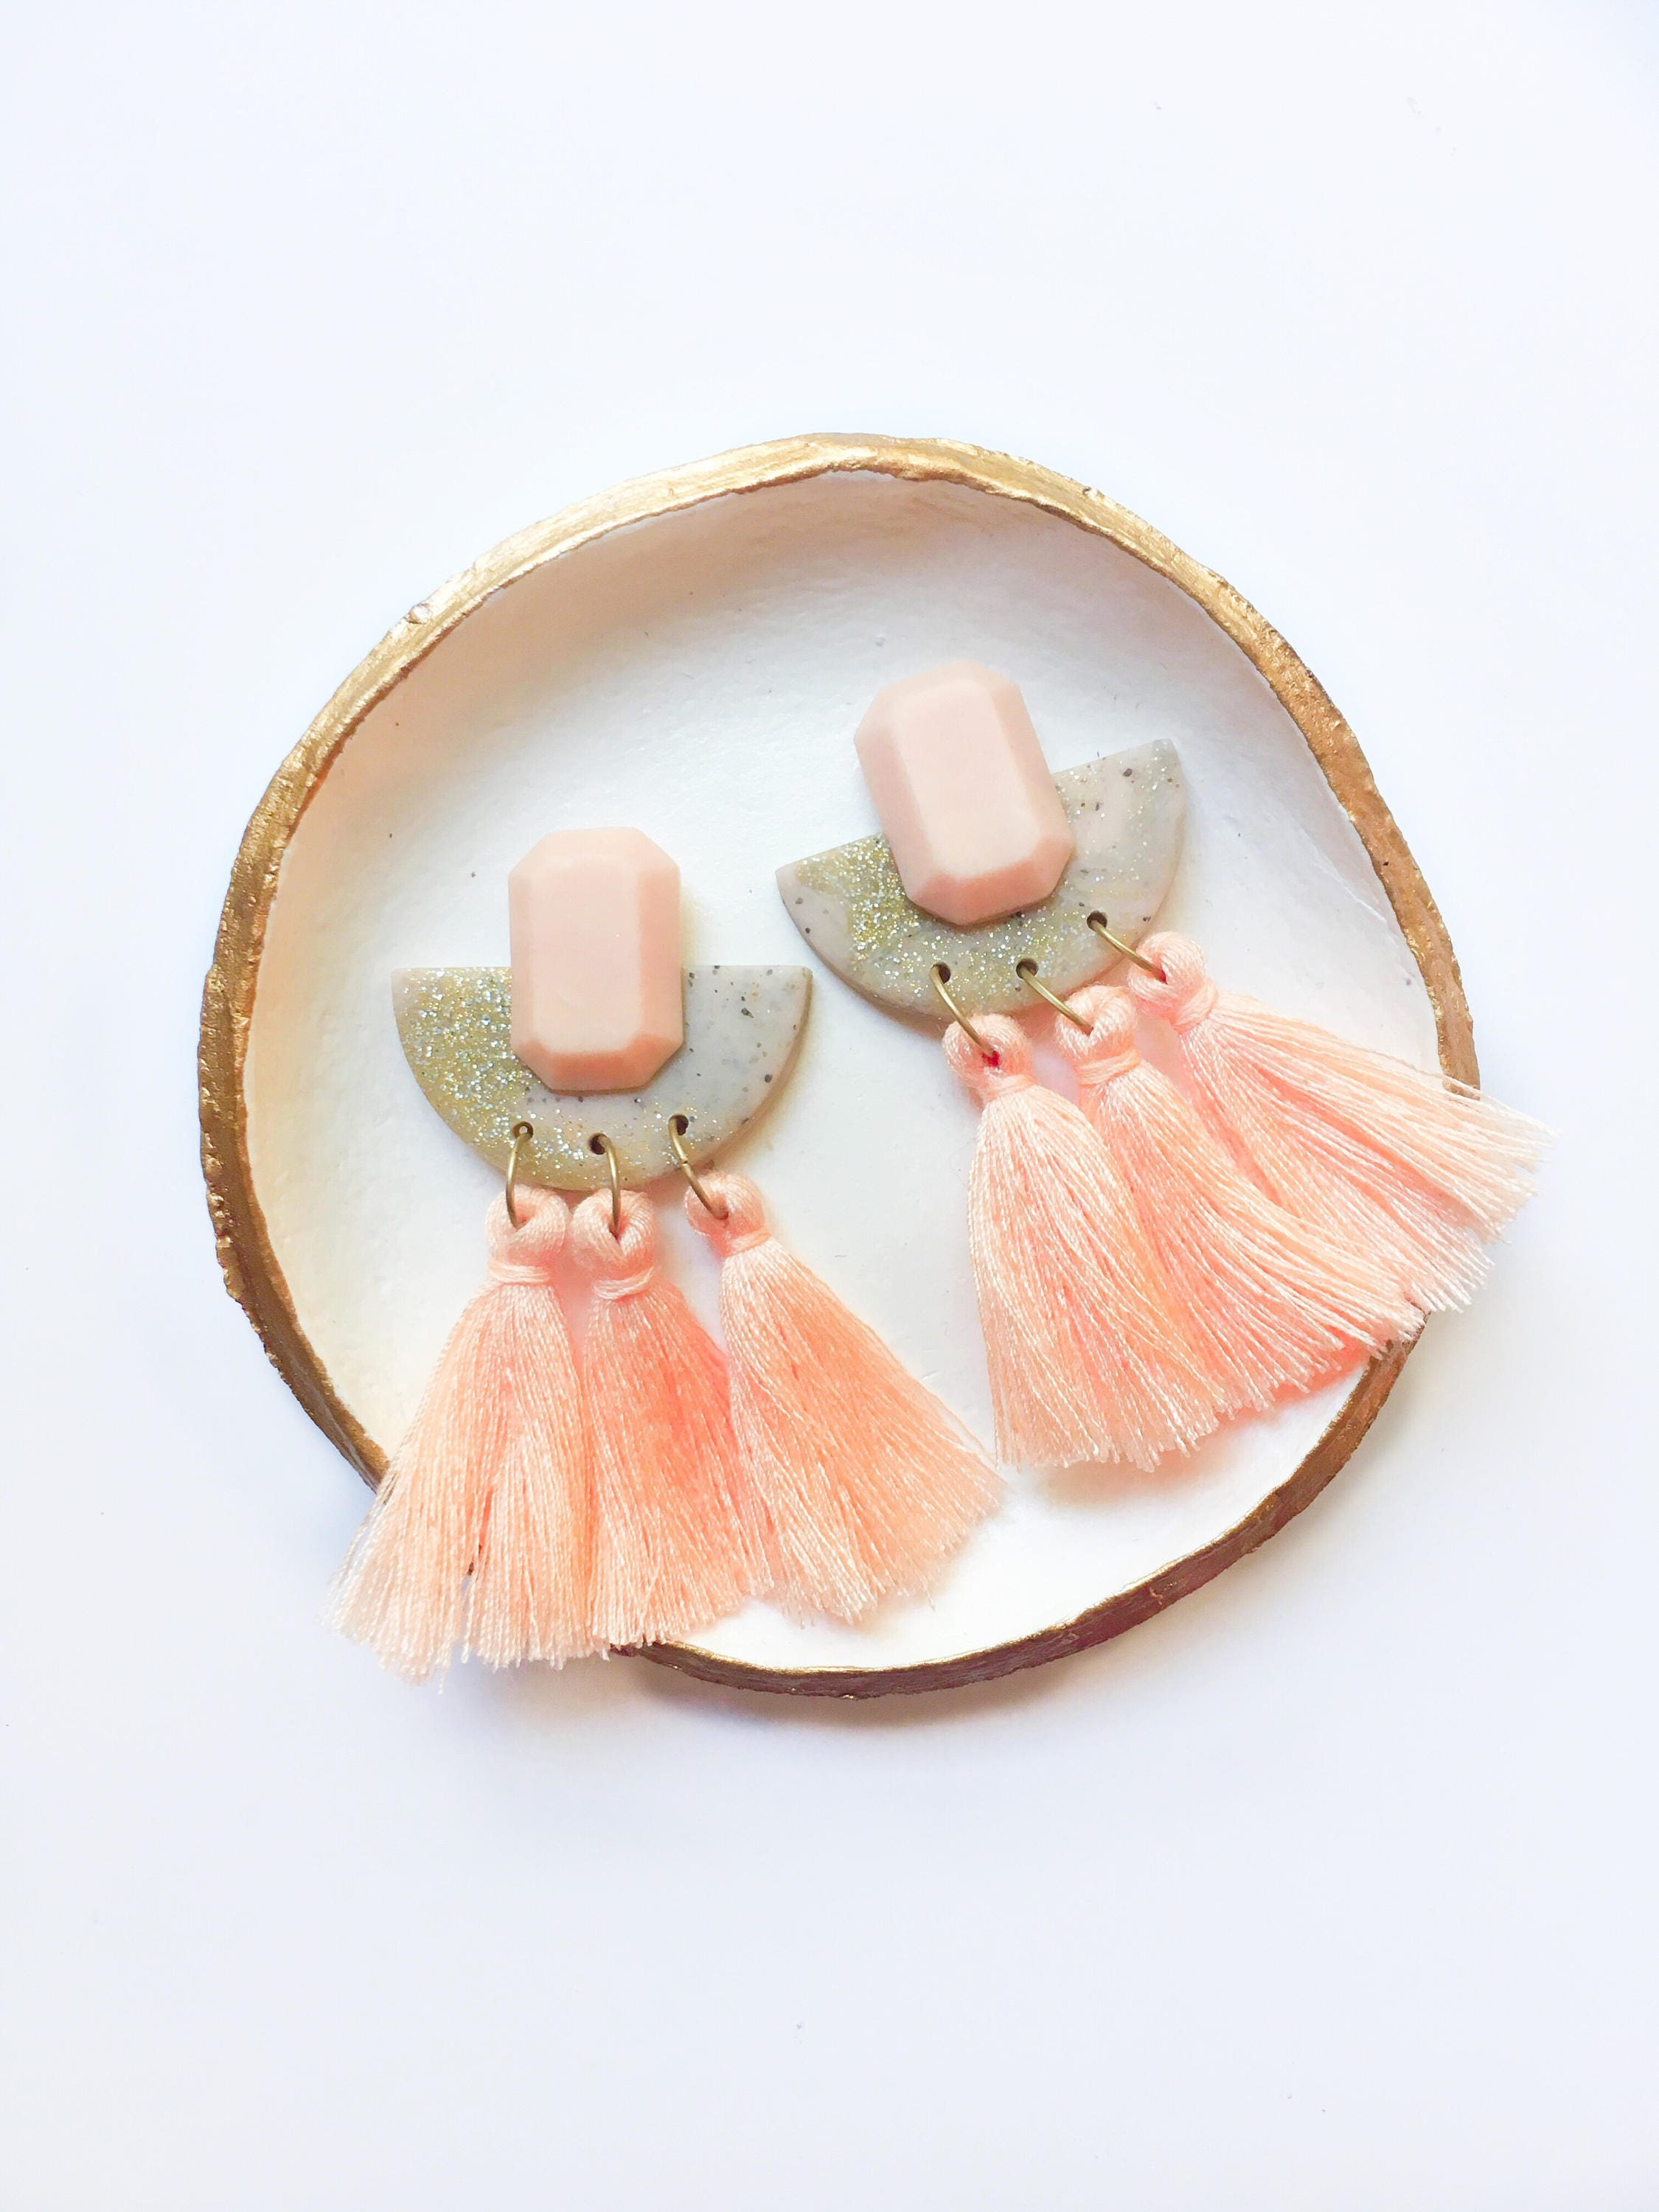 products online dangly store stylish and jonray earrings